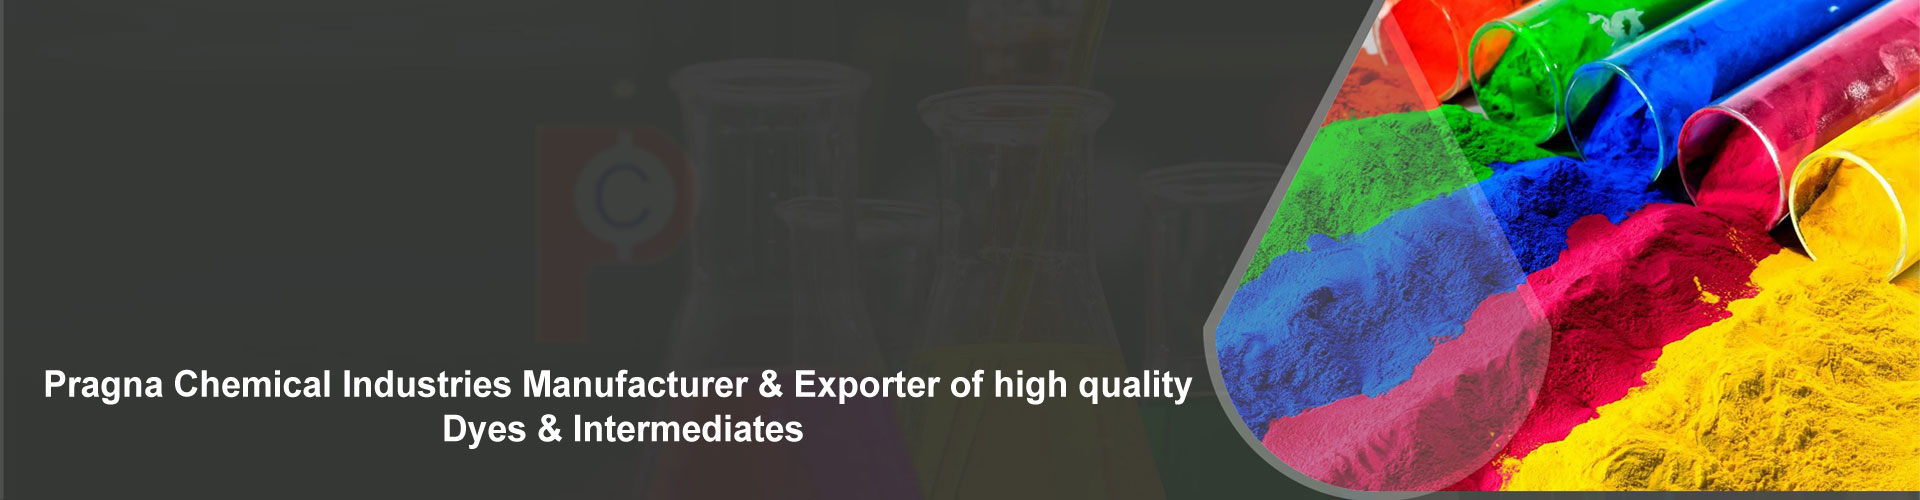 Manufacturers and Exporters of MNA,MDNB, Dyes Intermediates, Disper